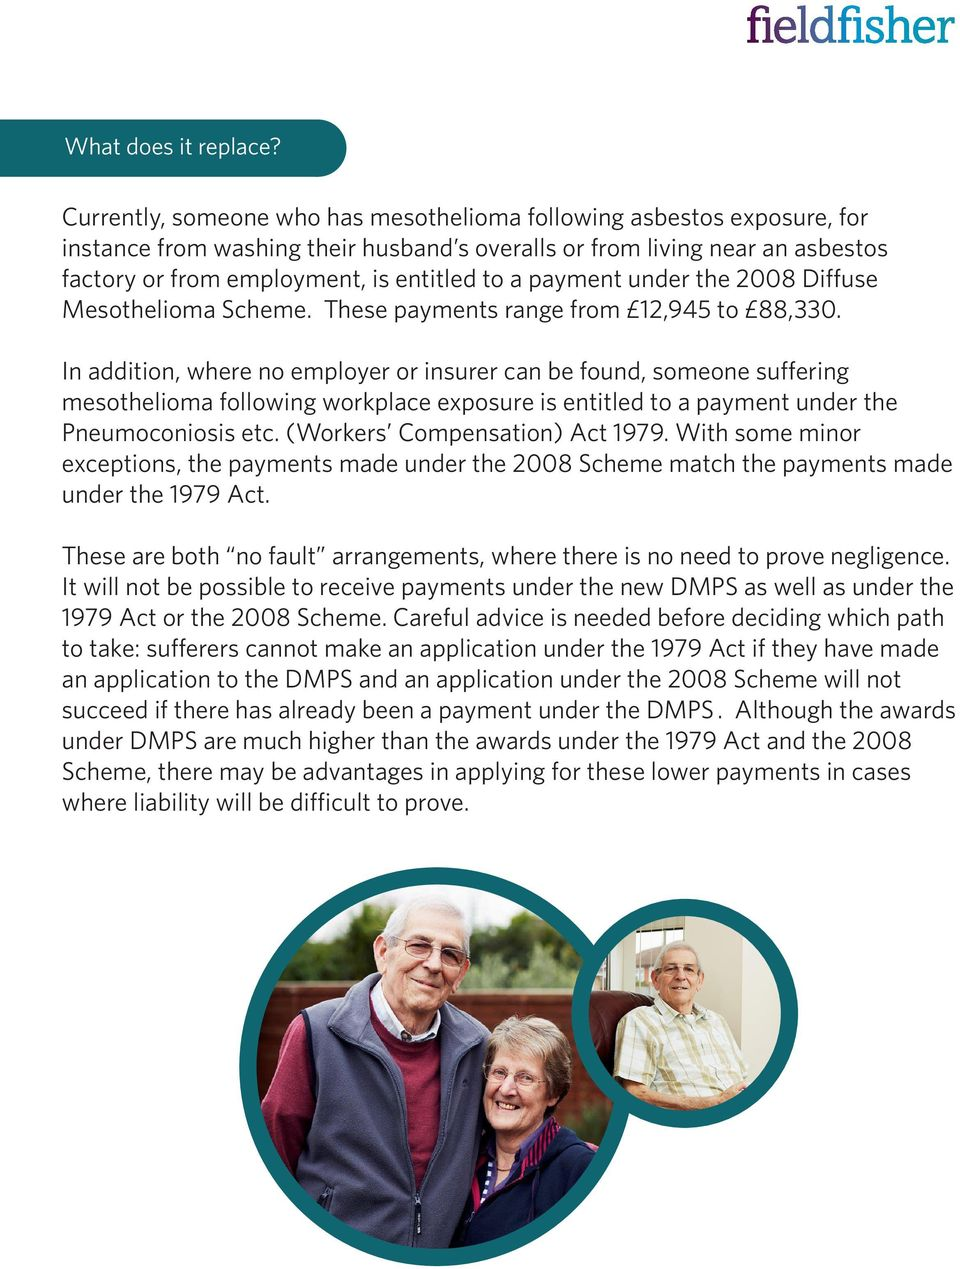 payment under the 2008 Diffuse Mesothelioma Scheme. These payments range from 12,945 to 88,330.